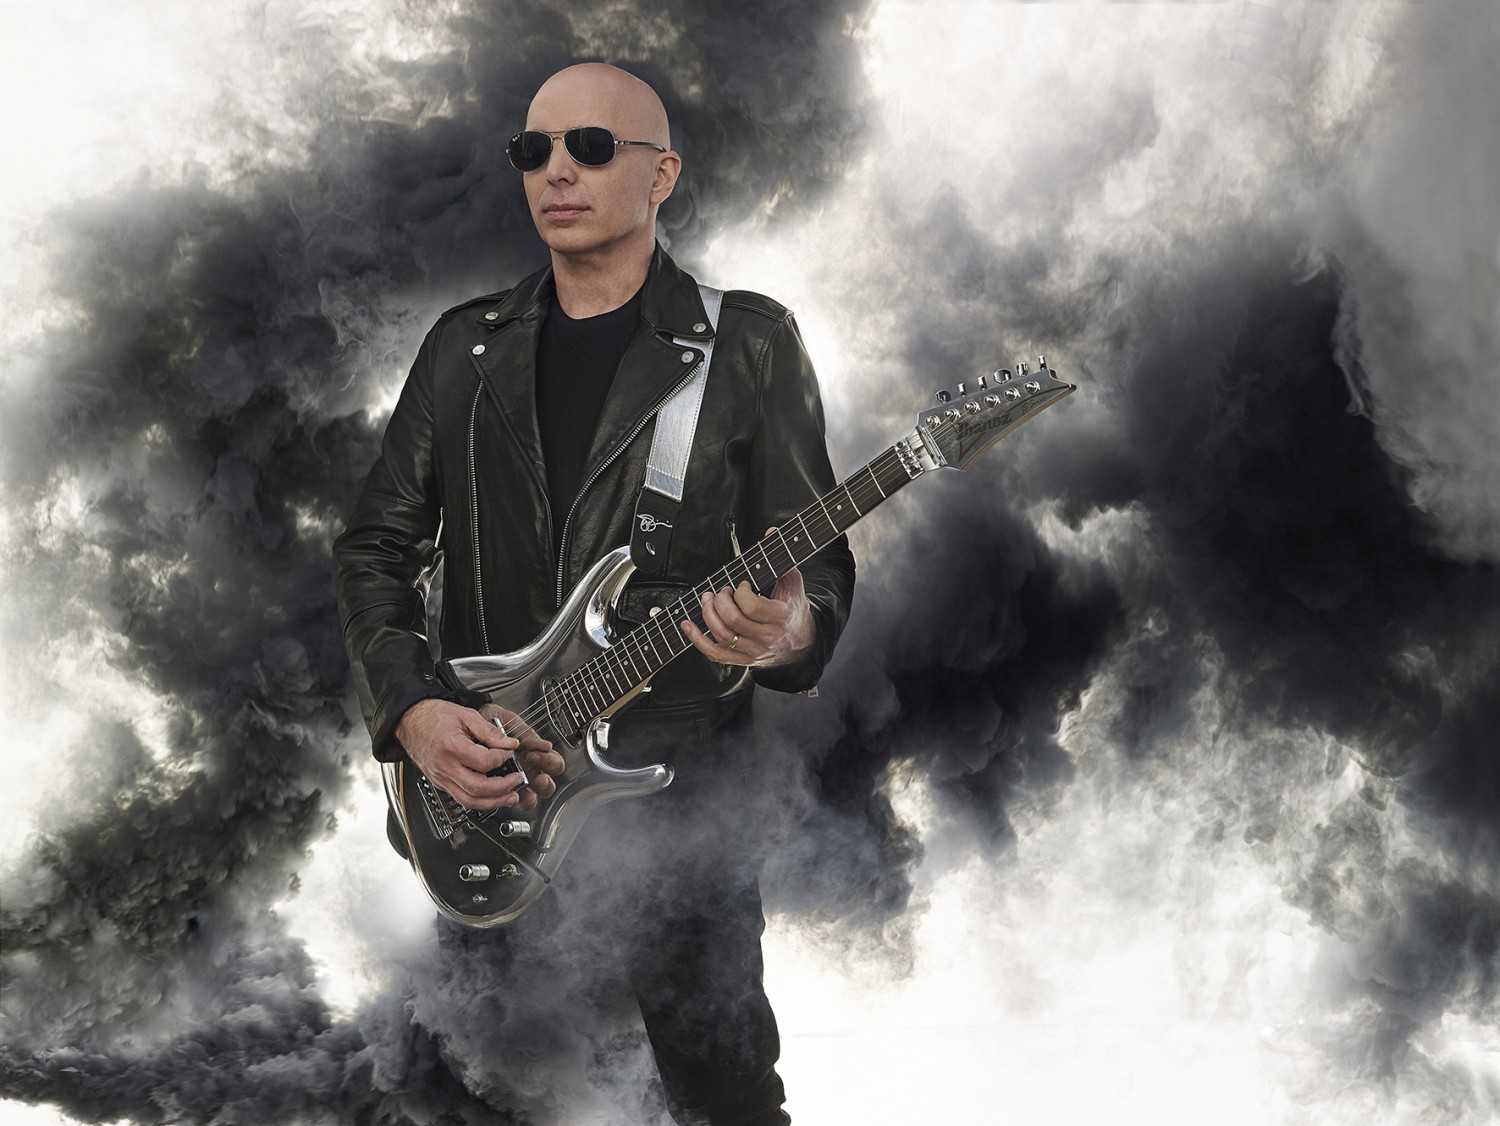 joe_satriani_02_photo_credit_joseph_cultice_small.jpg